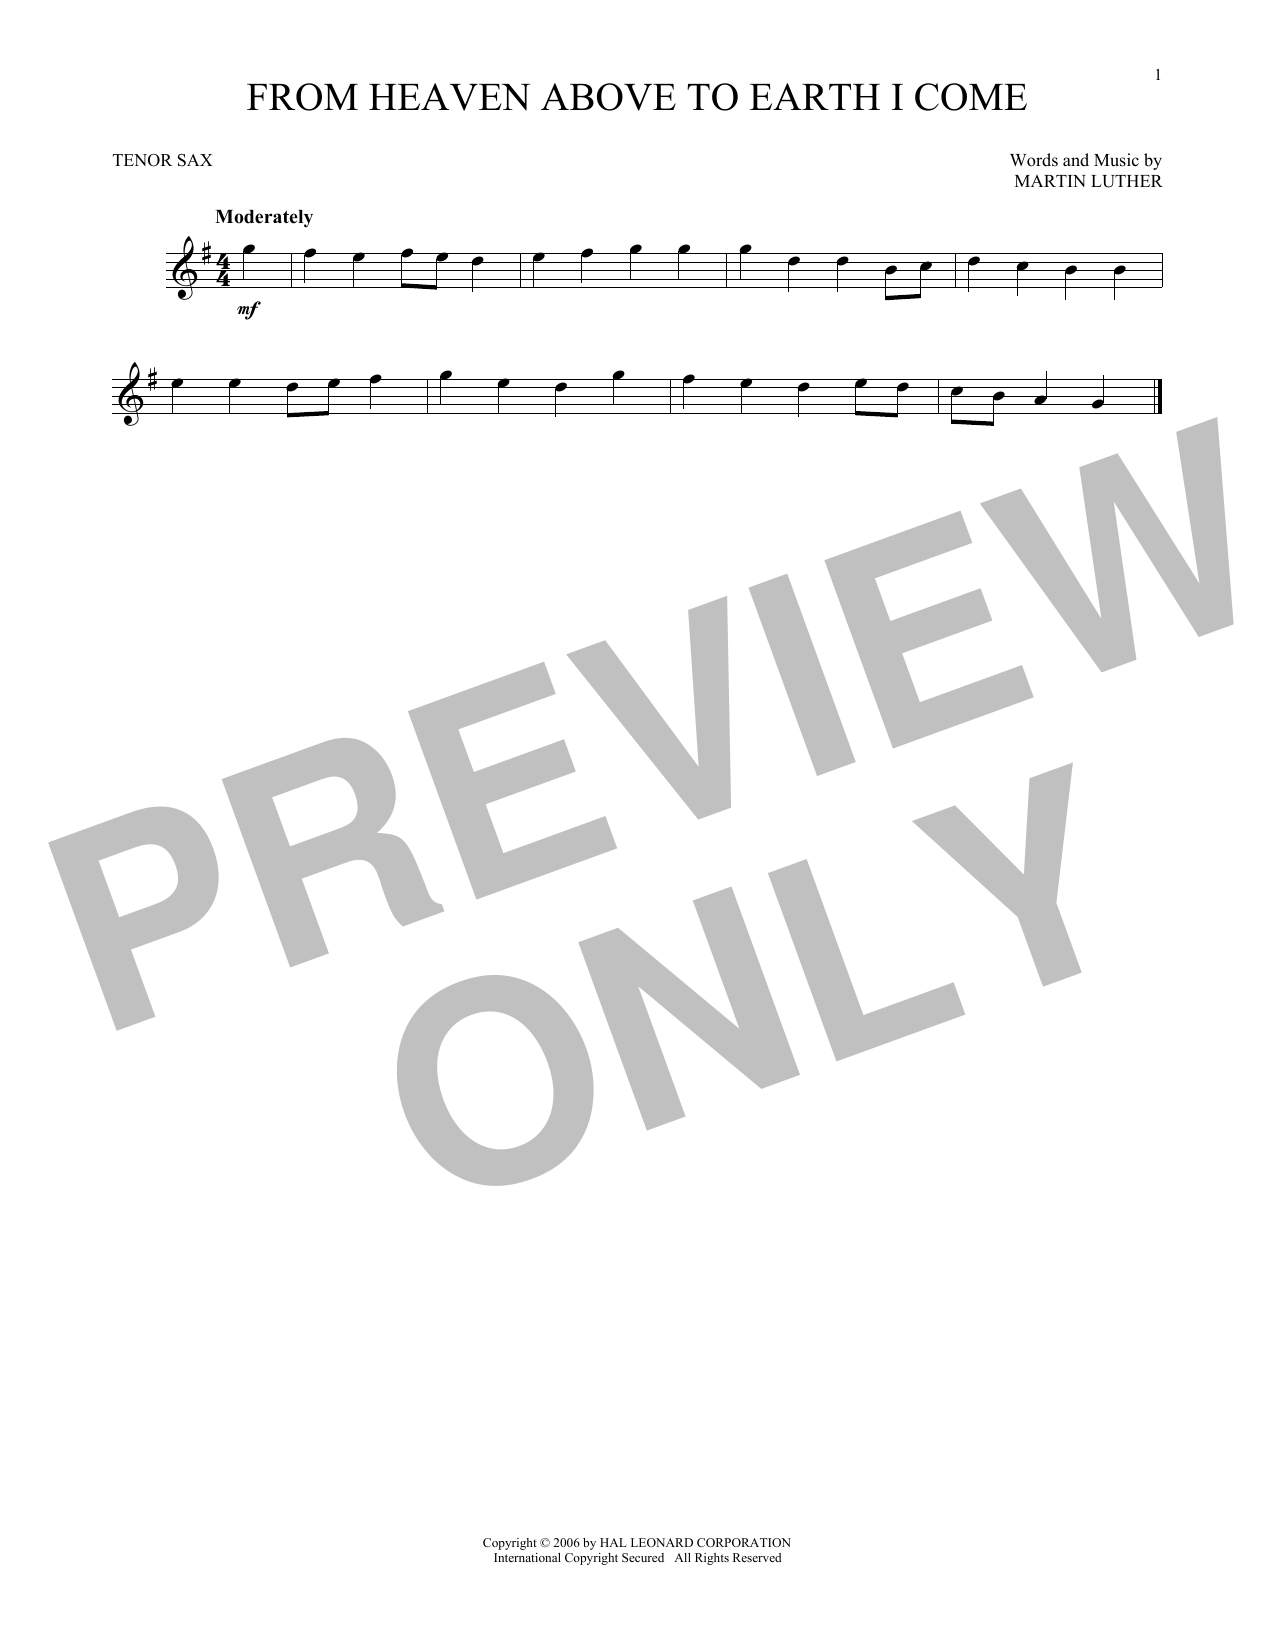 Martin Luther From Heaven Above To Earth I Come sheet music notes and chords. Download Printable PDF.